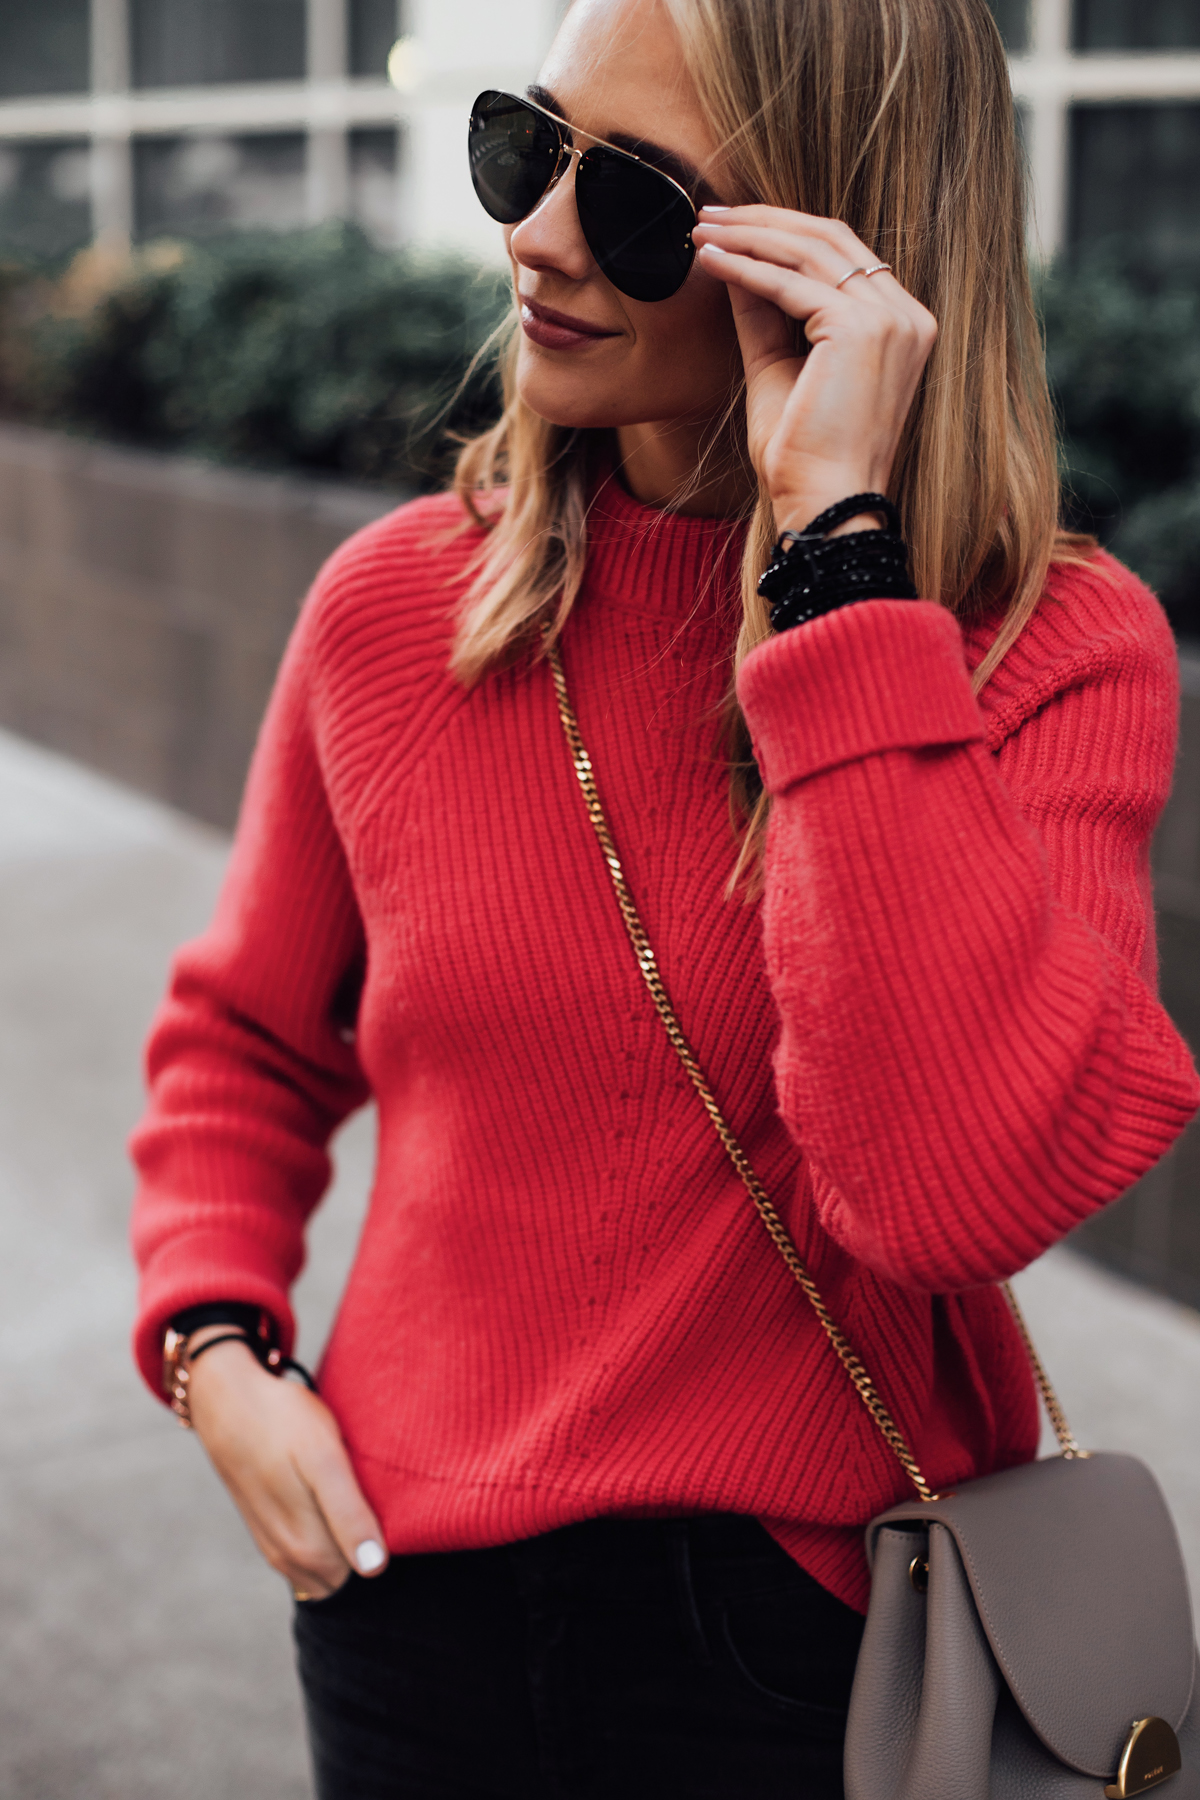 Blonde Woman Wearing AllSaints Red Sweater Victoria Emerson Beaded Black Wrap Bracelet Celine Aviator Sunglasses Fashion Jackson San Diego Fashion Blogger Street Style